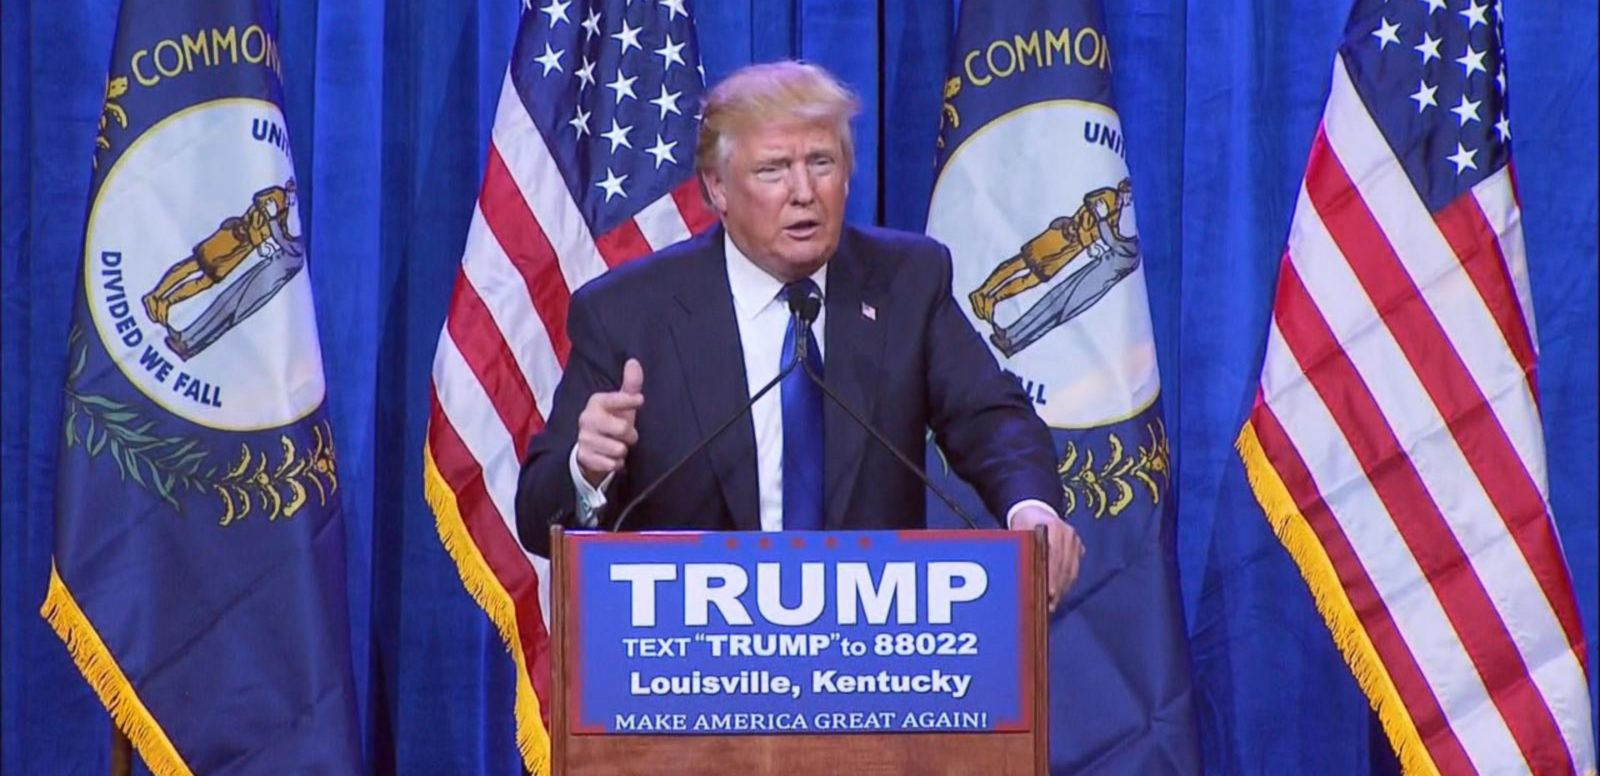 VIDEO: Donald Trump Reacts to Mitt Romneys Upcoming Speech